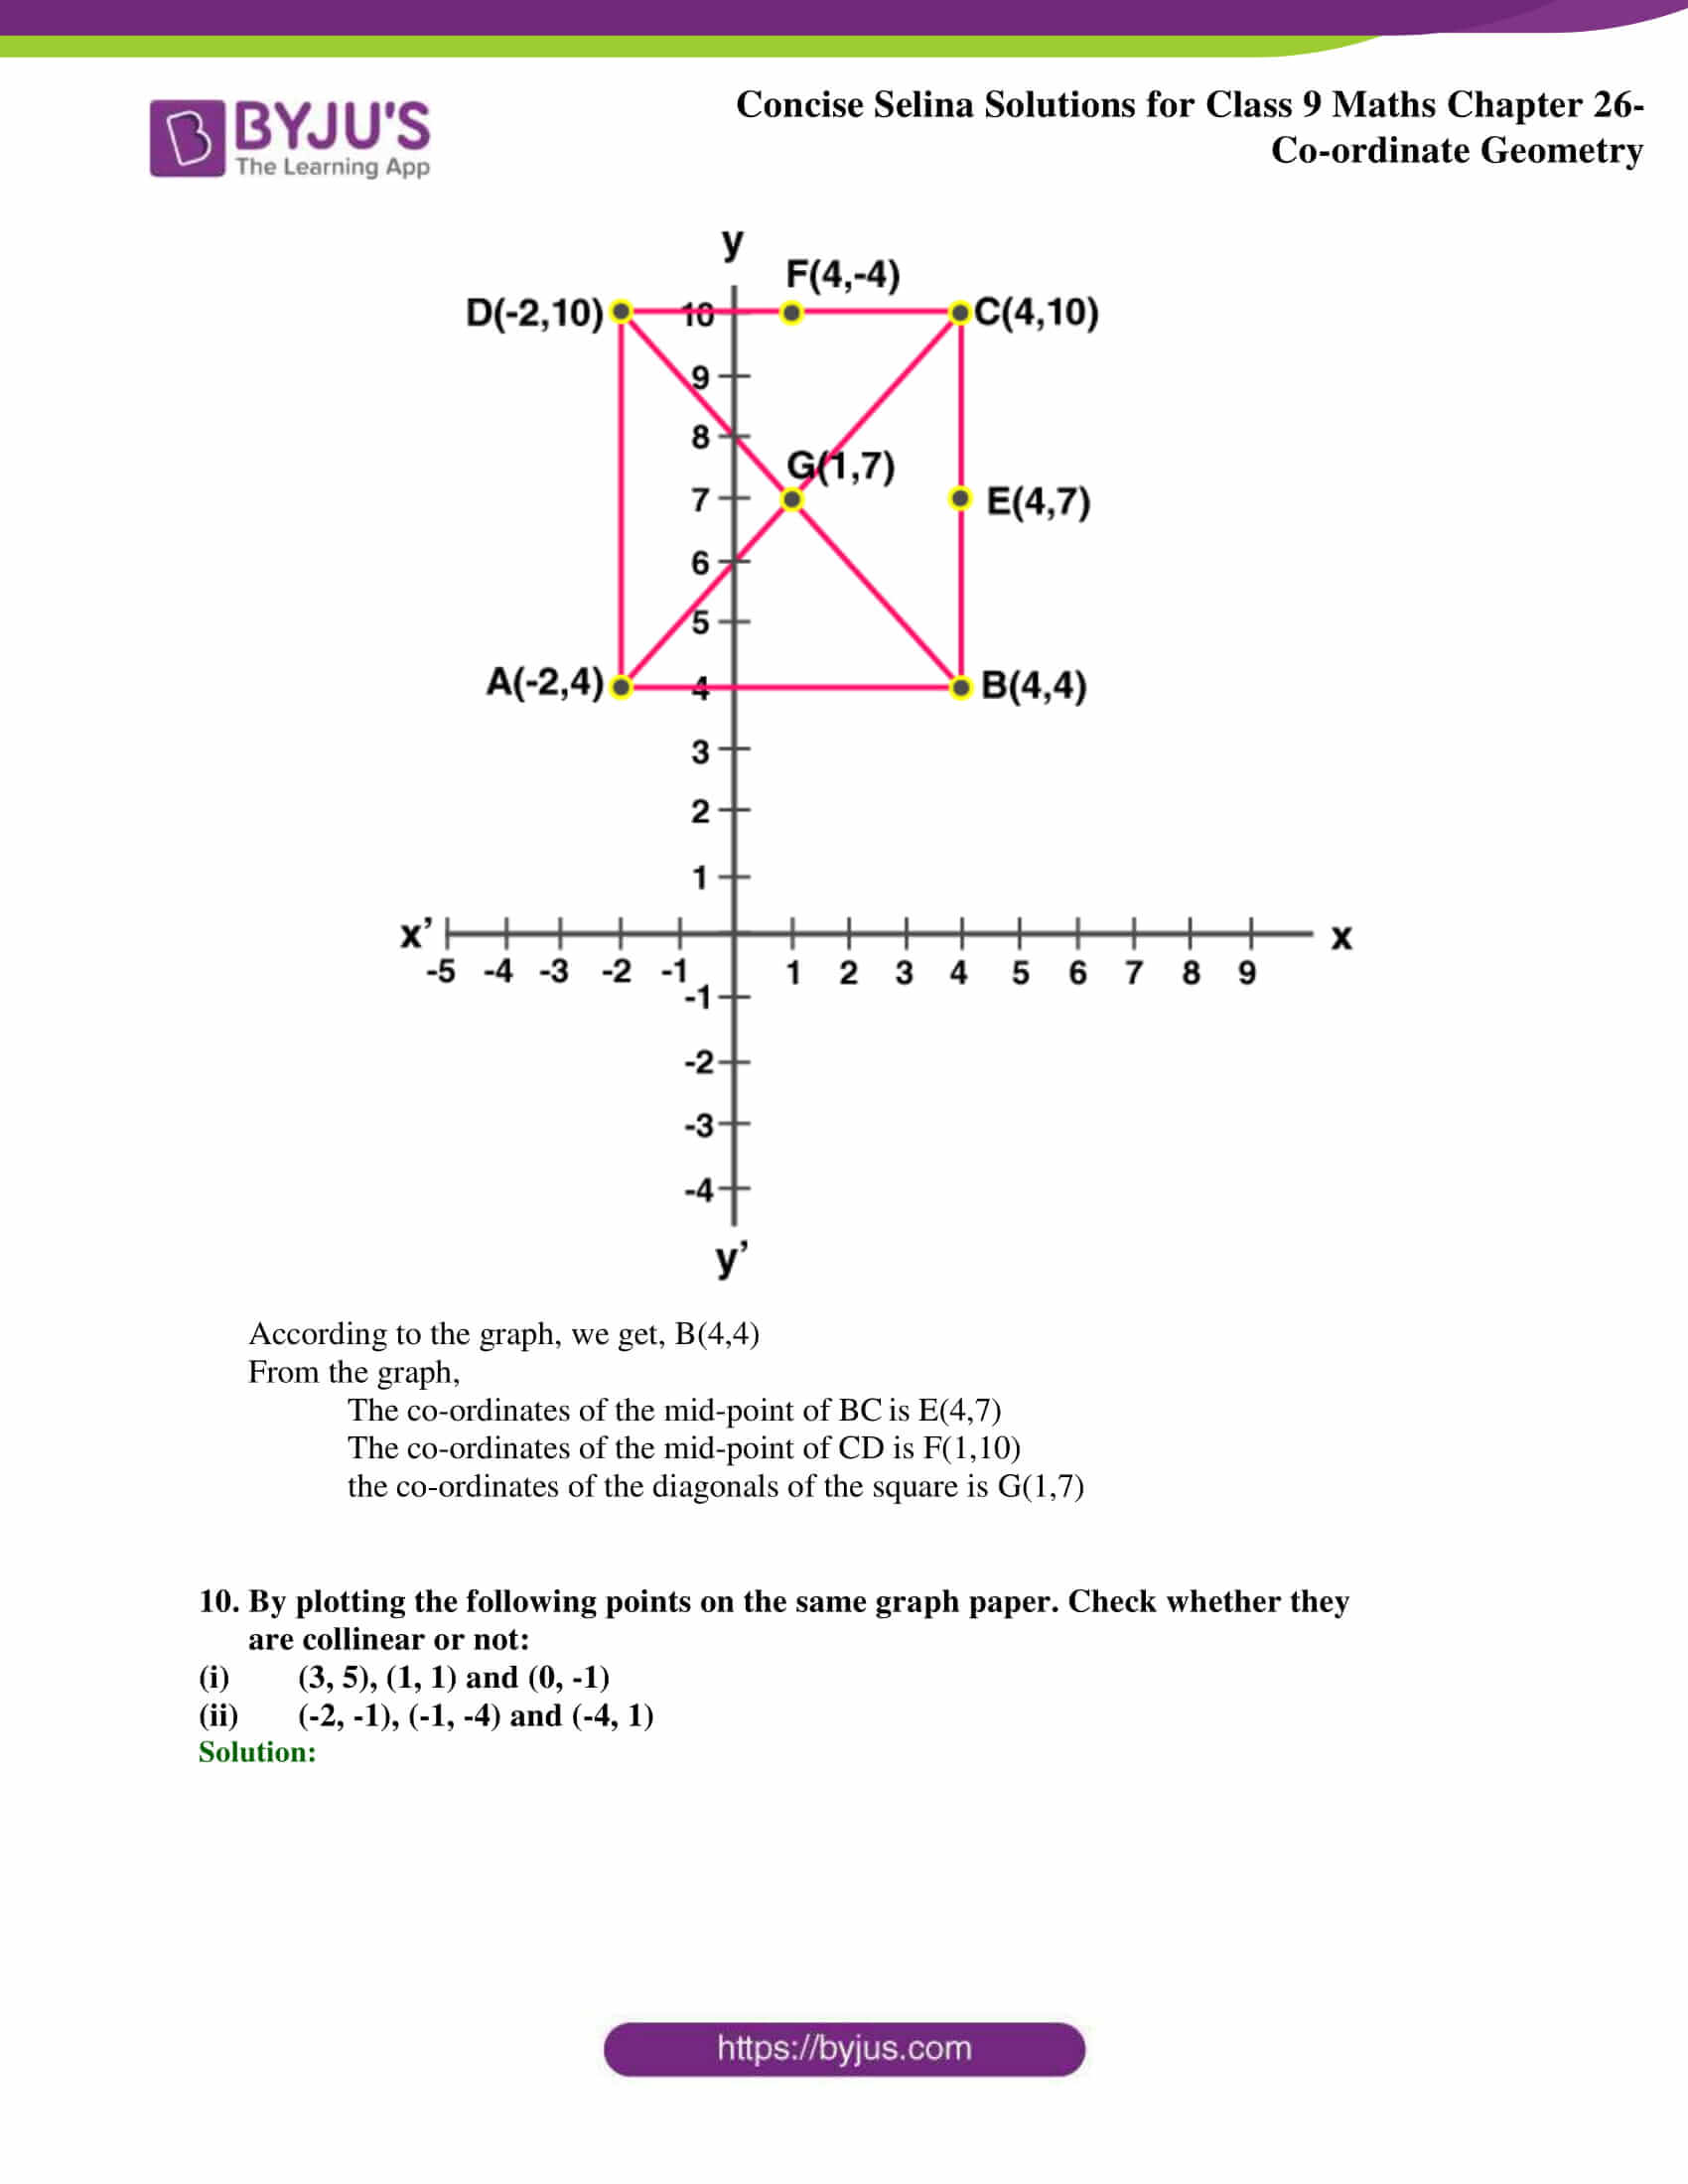 Selina Solutions for Class 9 Maths Chapter 26 part 11